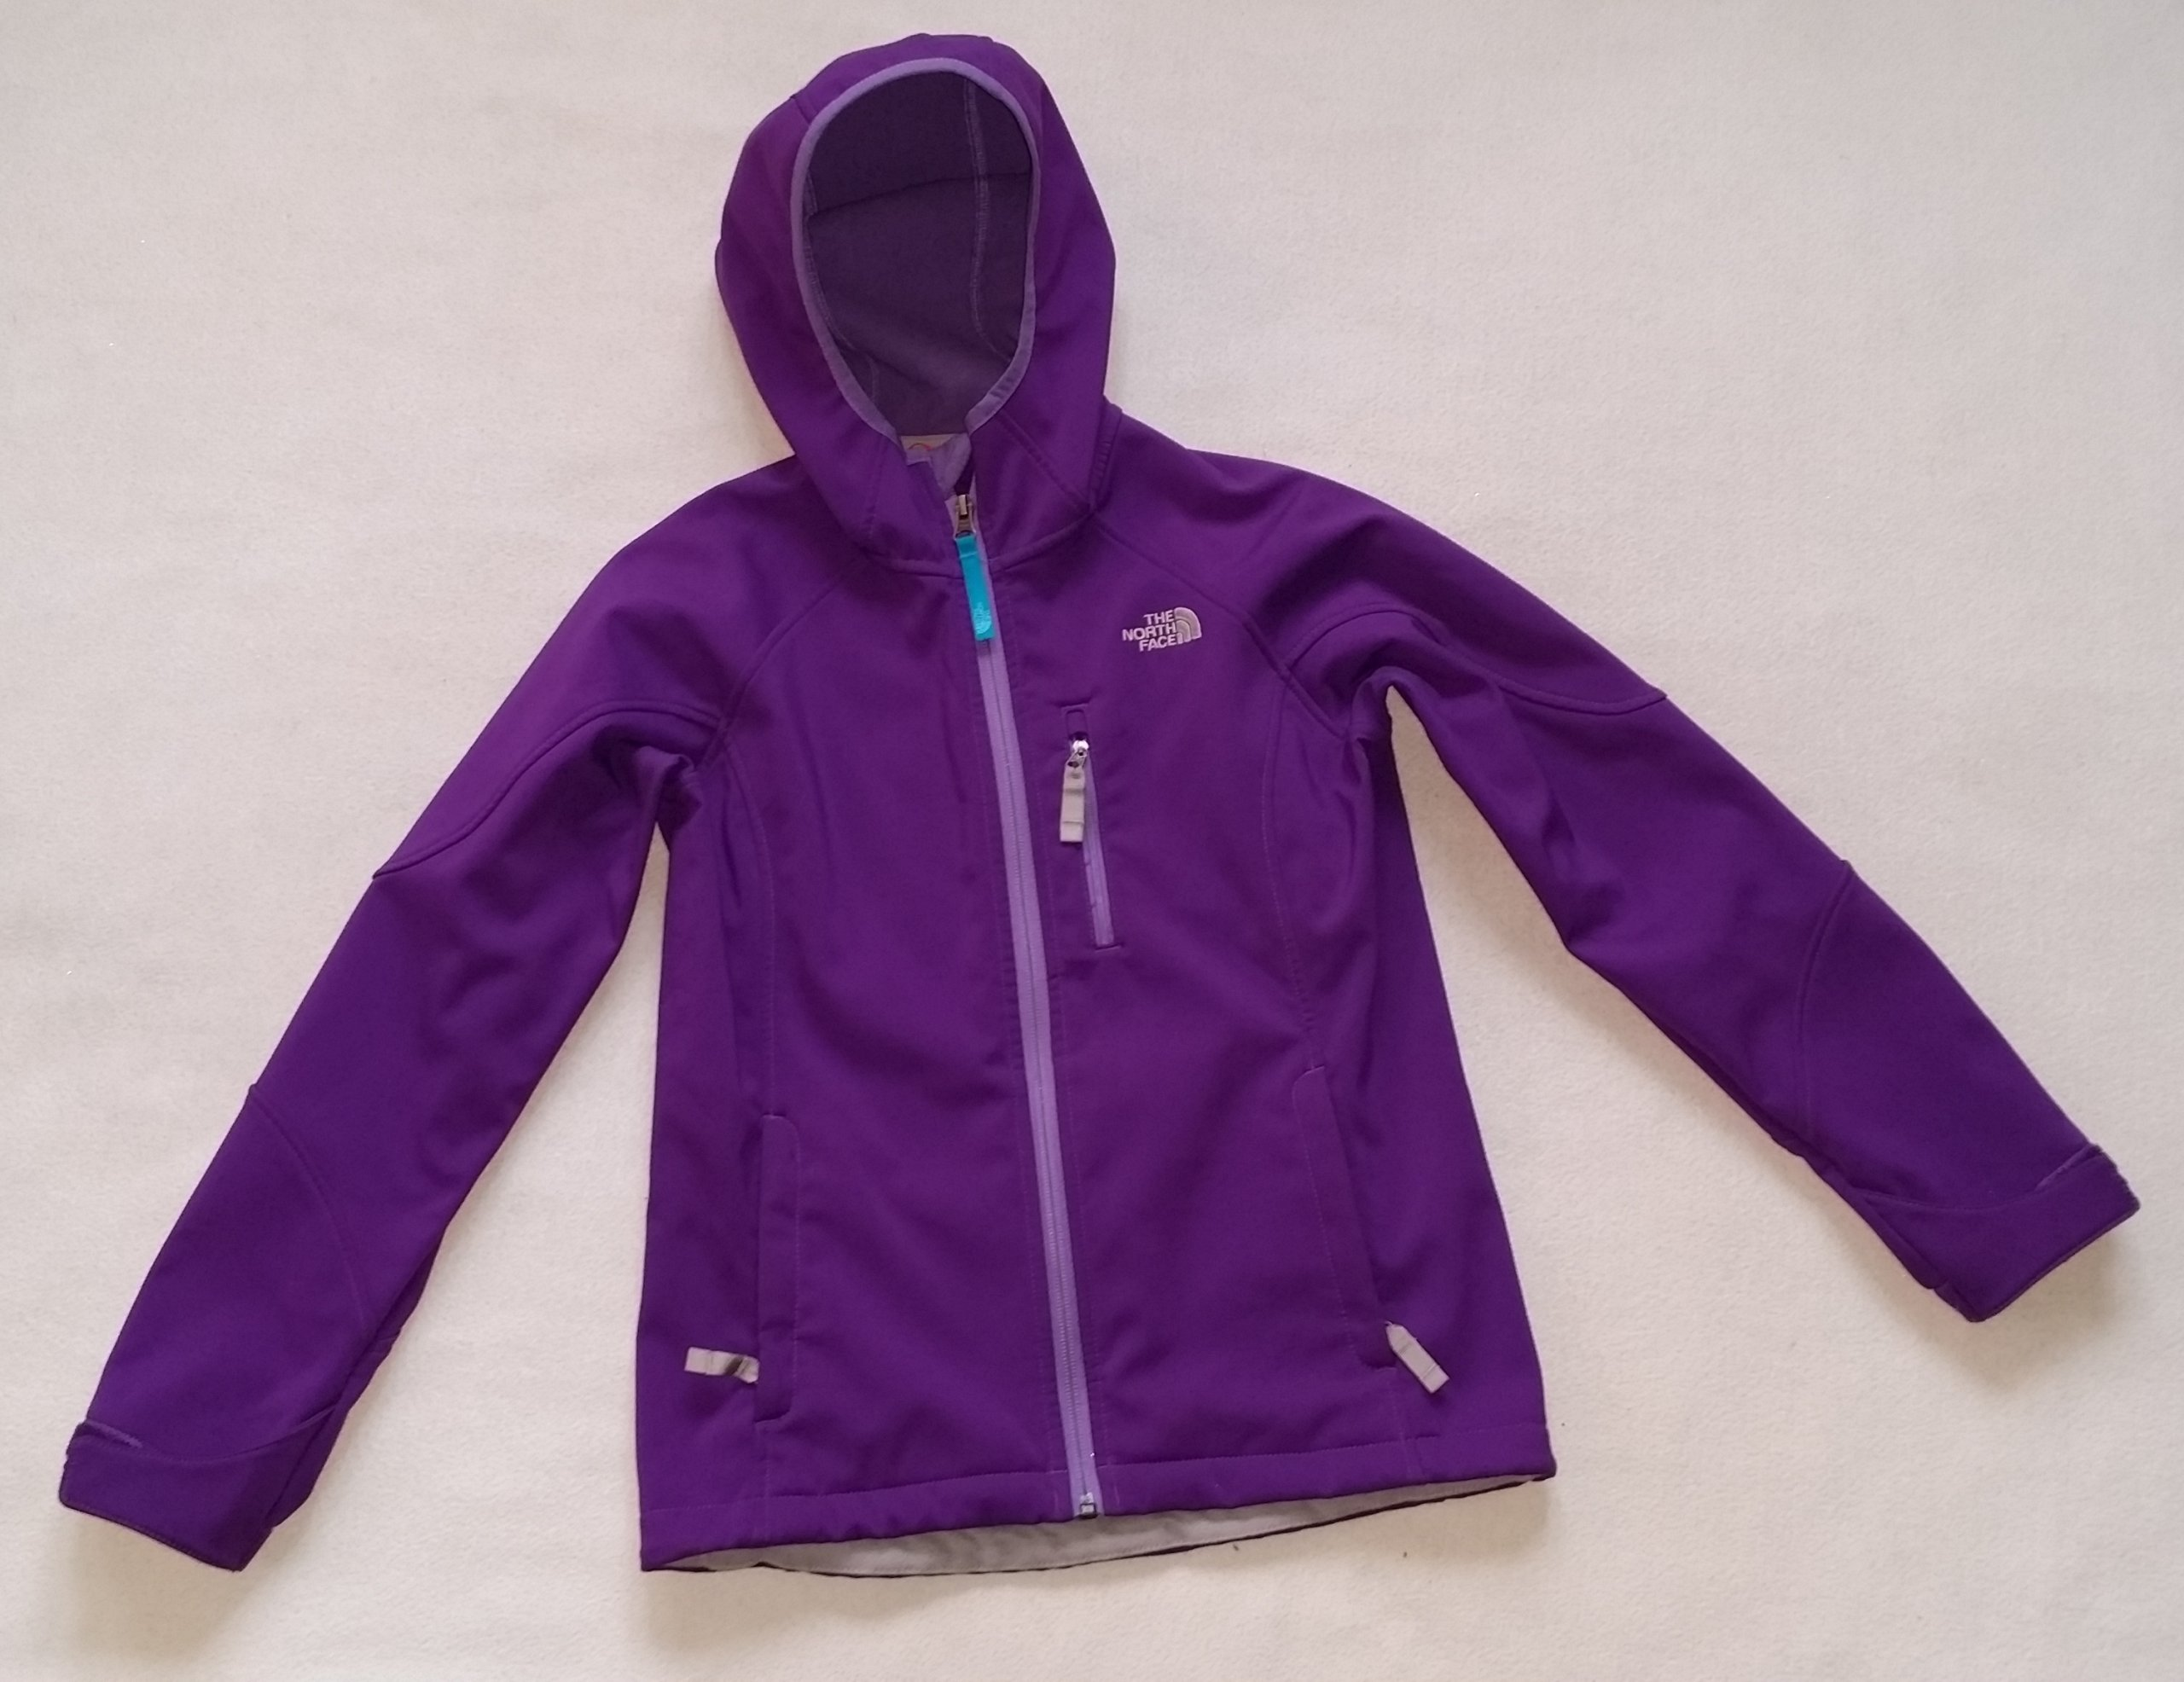 THE NORTH FACE SOFT SHELL ROZM.146 152 STAN BDB